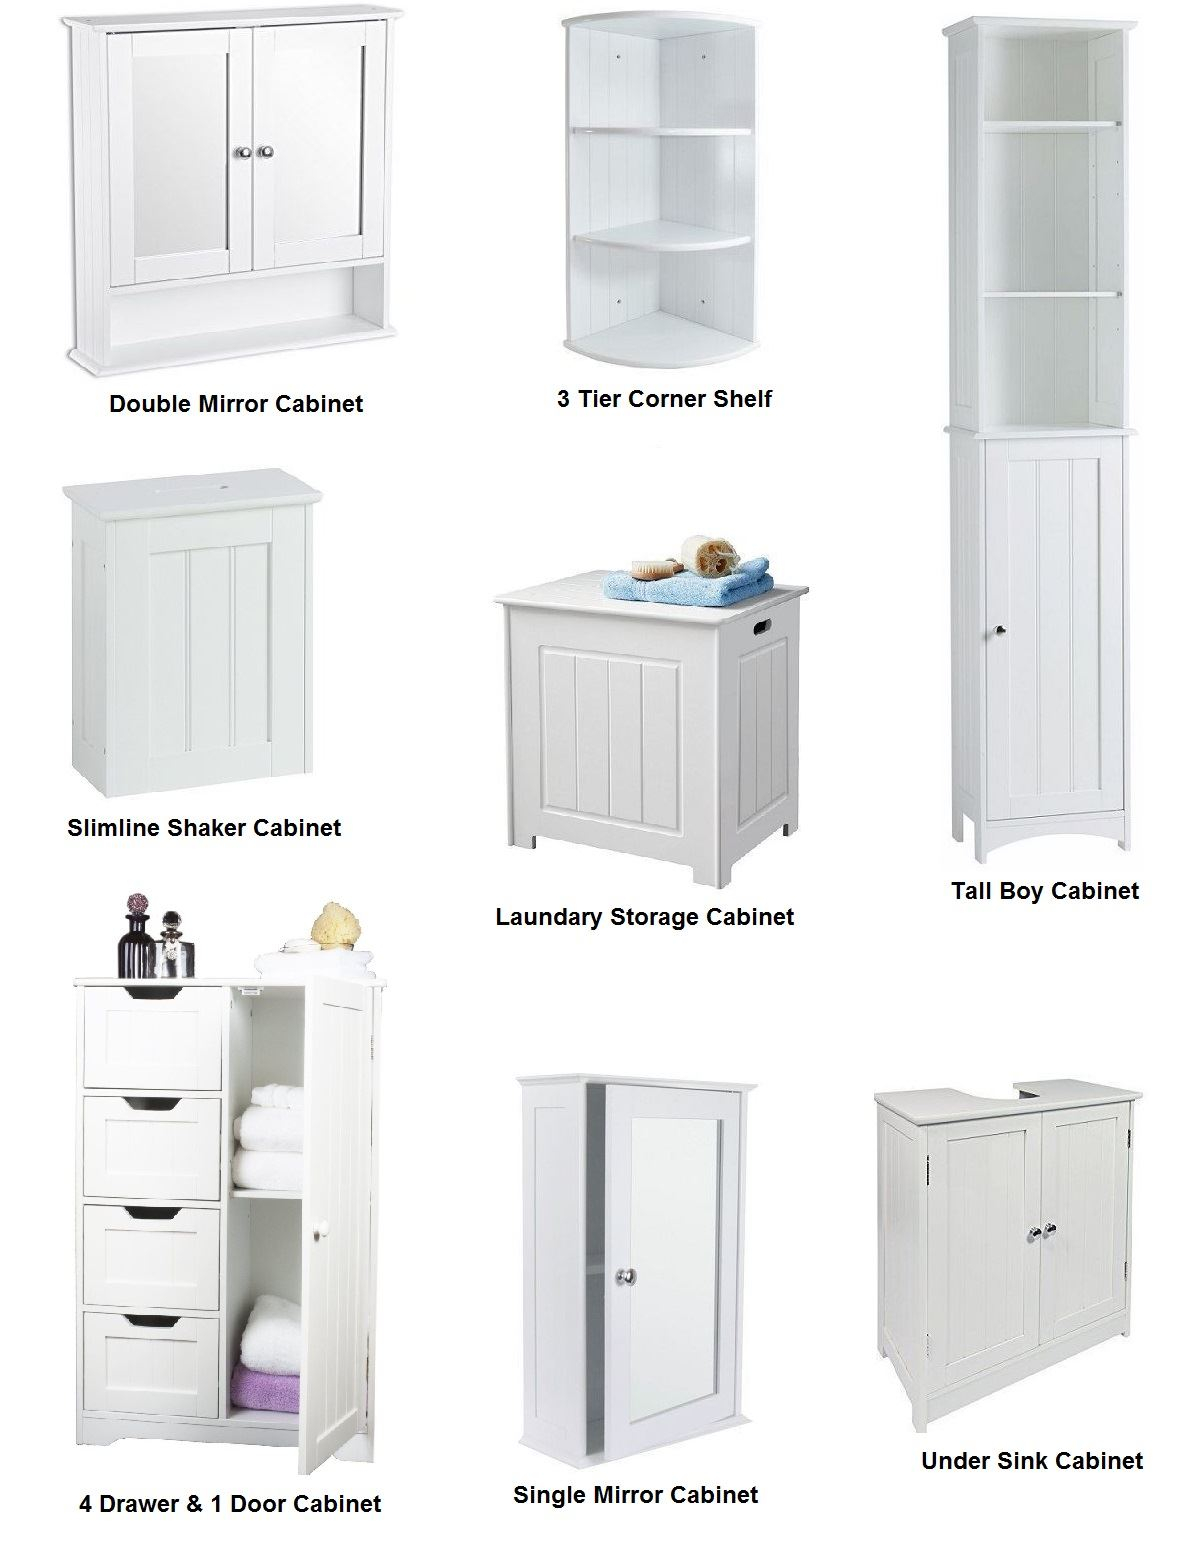 Details About New White Wooden Bathroom Cabinet Shelf Furniture Cupboard Bedroom Storage Unit with regard to size 1201 X 1541